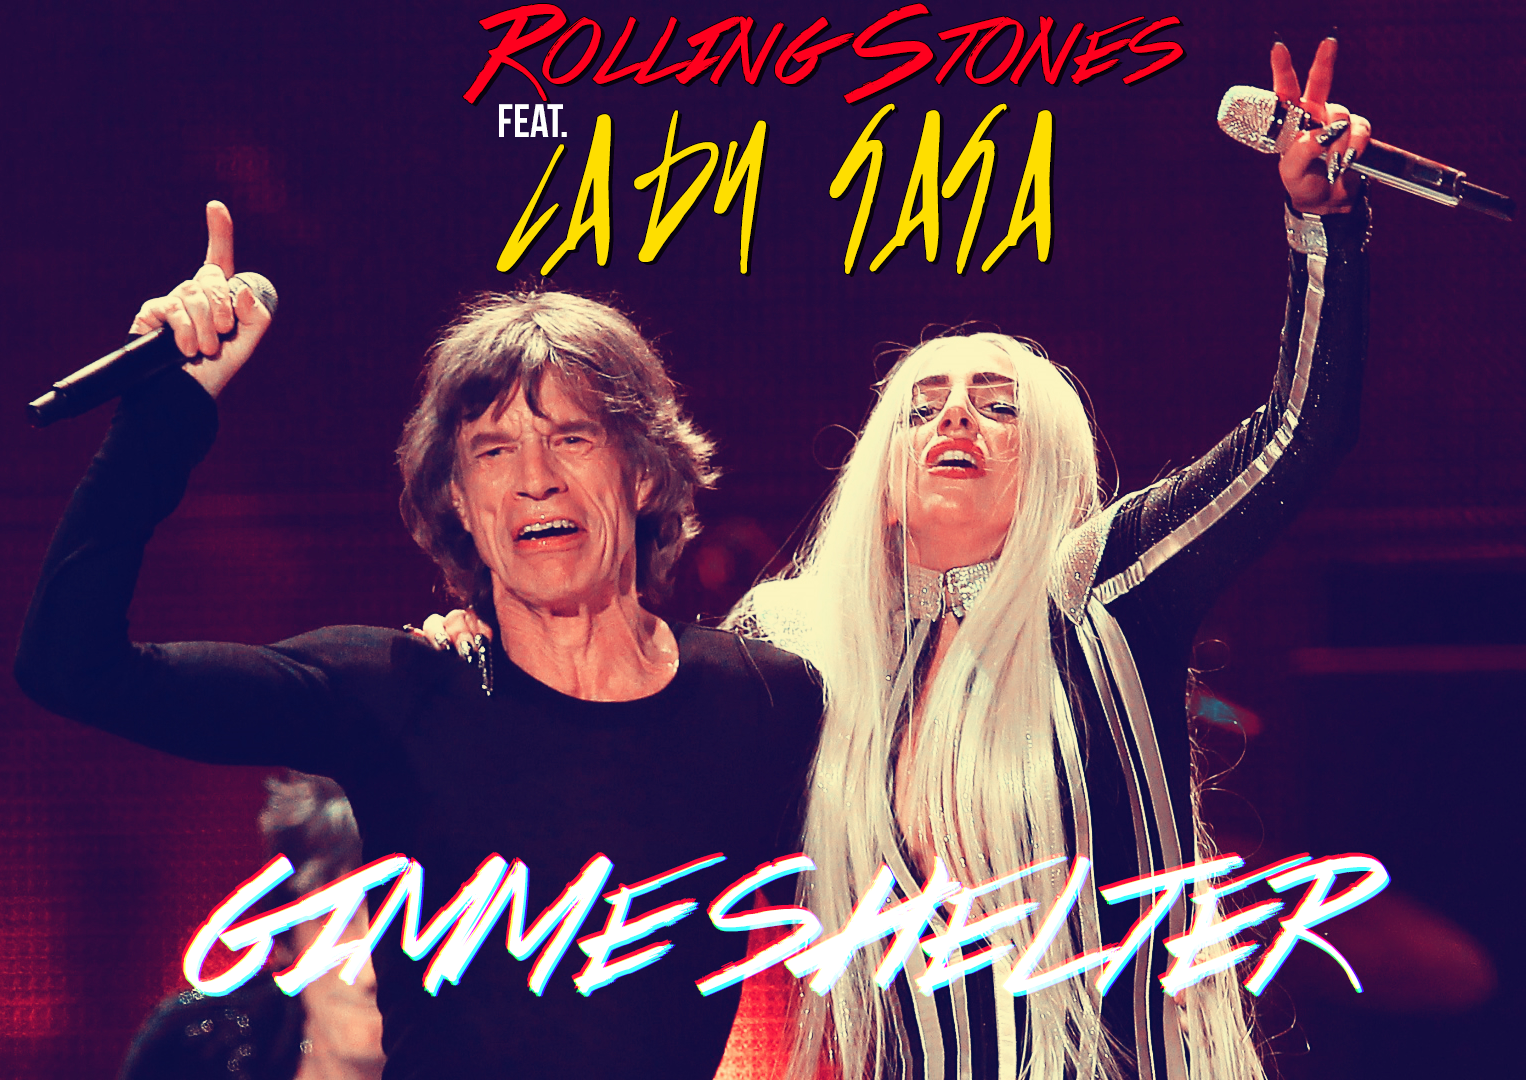 The Rolling Stones - Gimme Shelter (Ft. Lady Gaga)